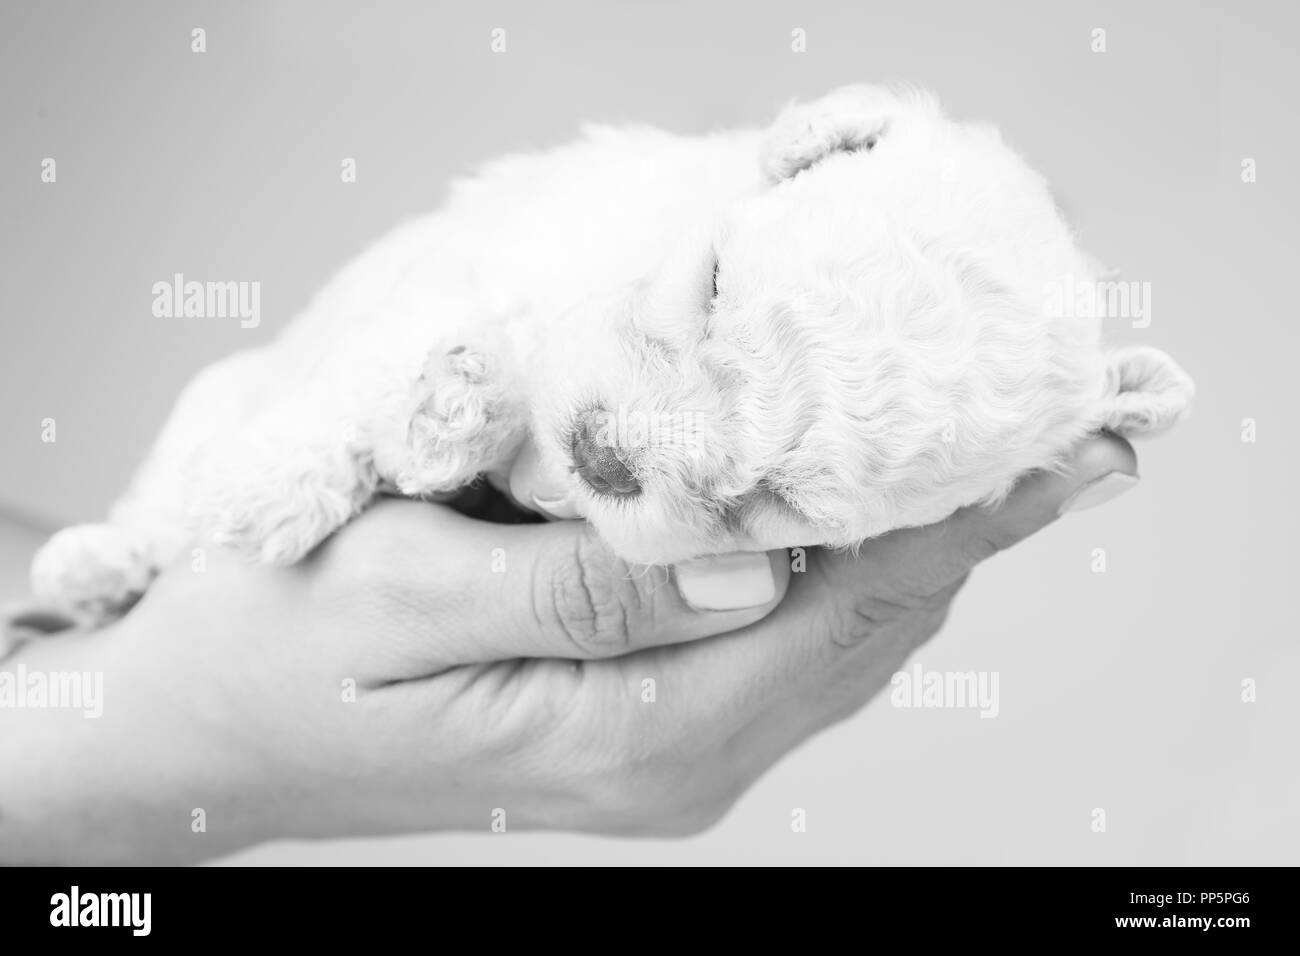 Hand holding a puppy isolated in grey background. Stock Photo